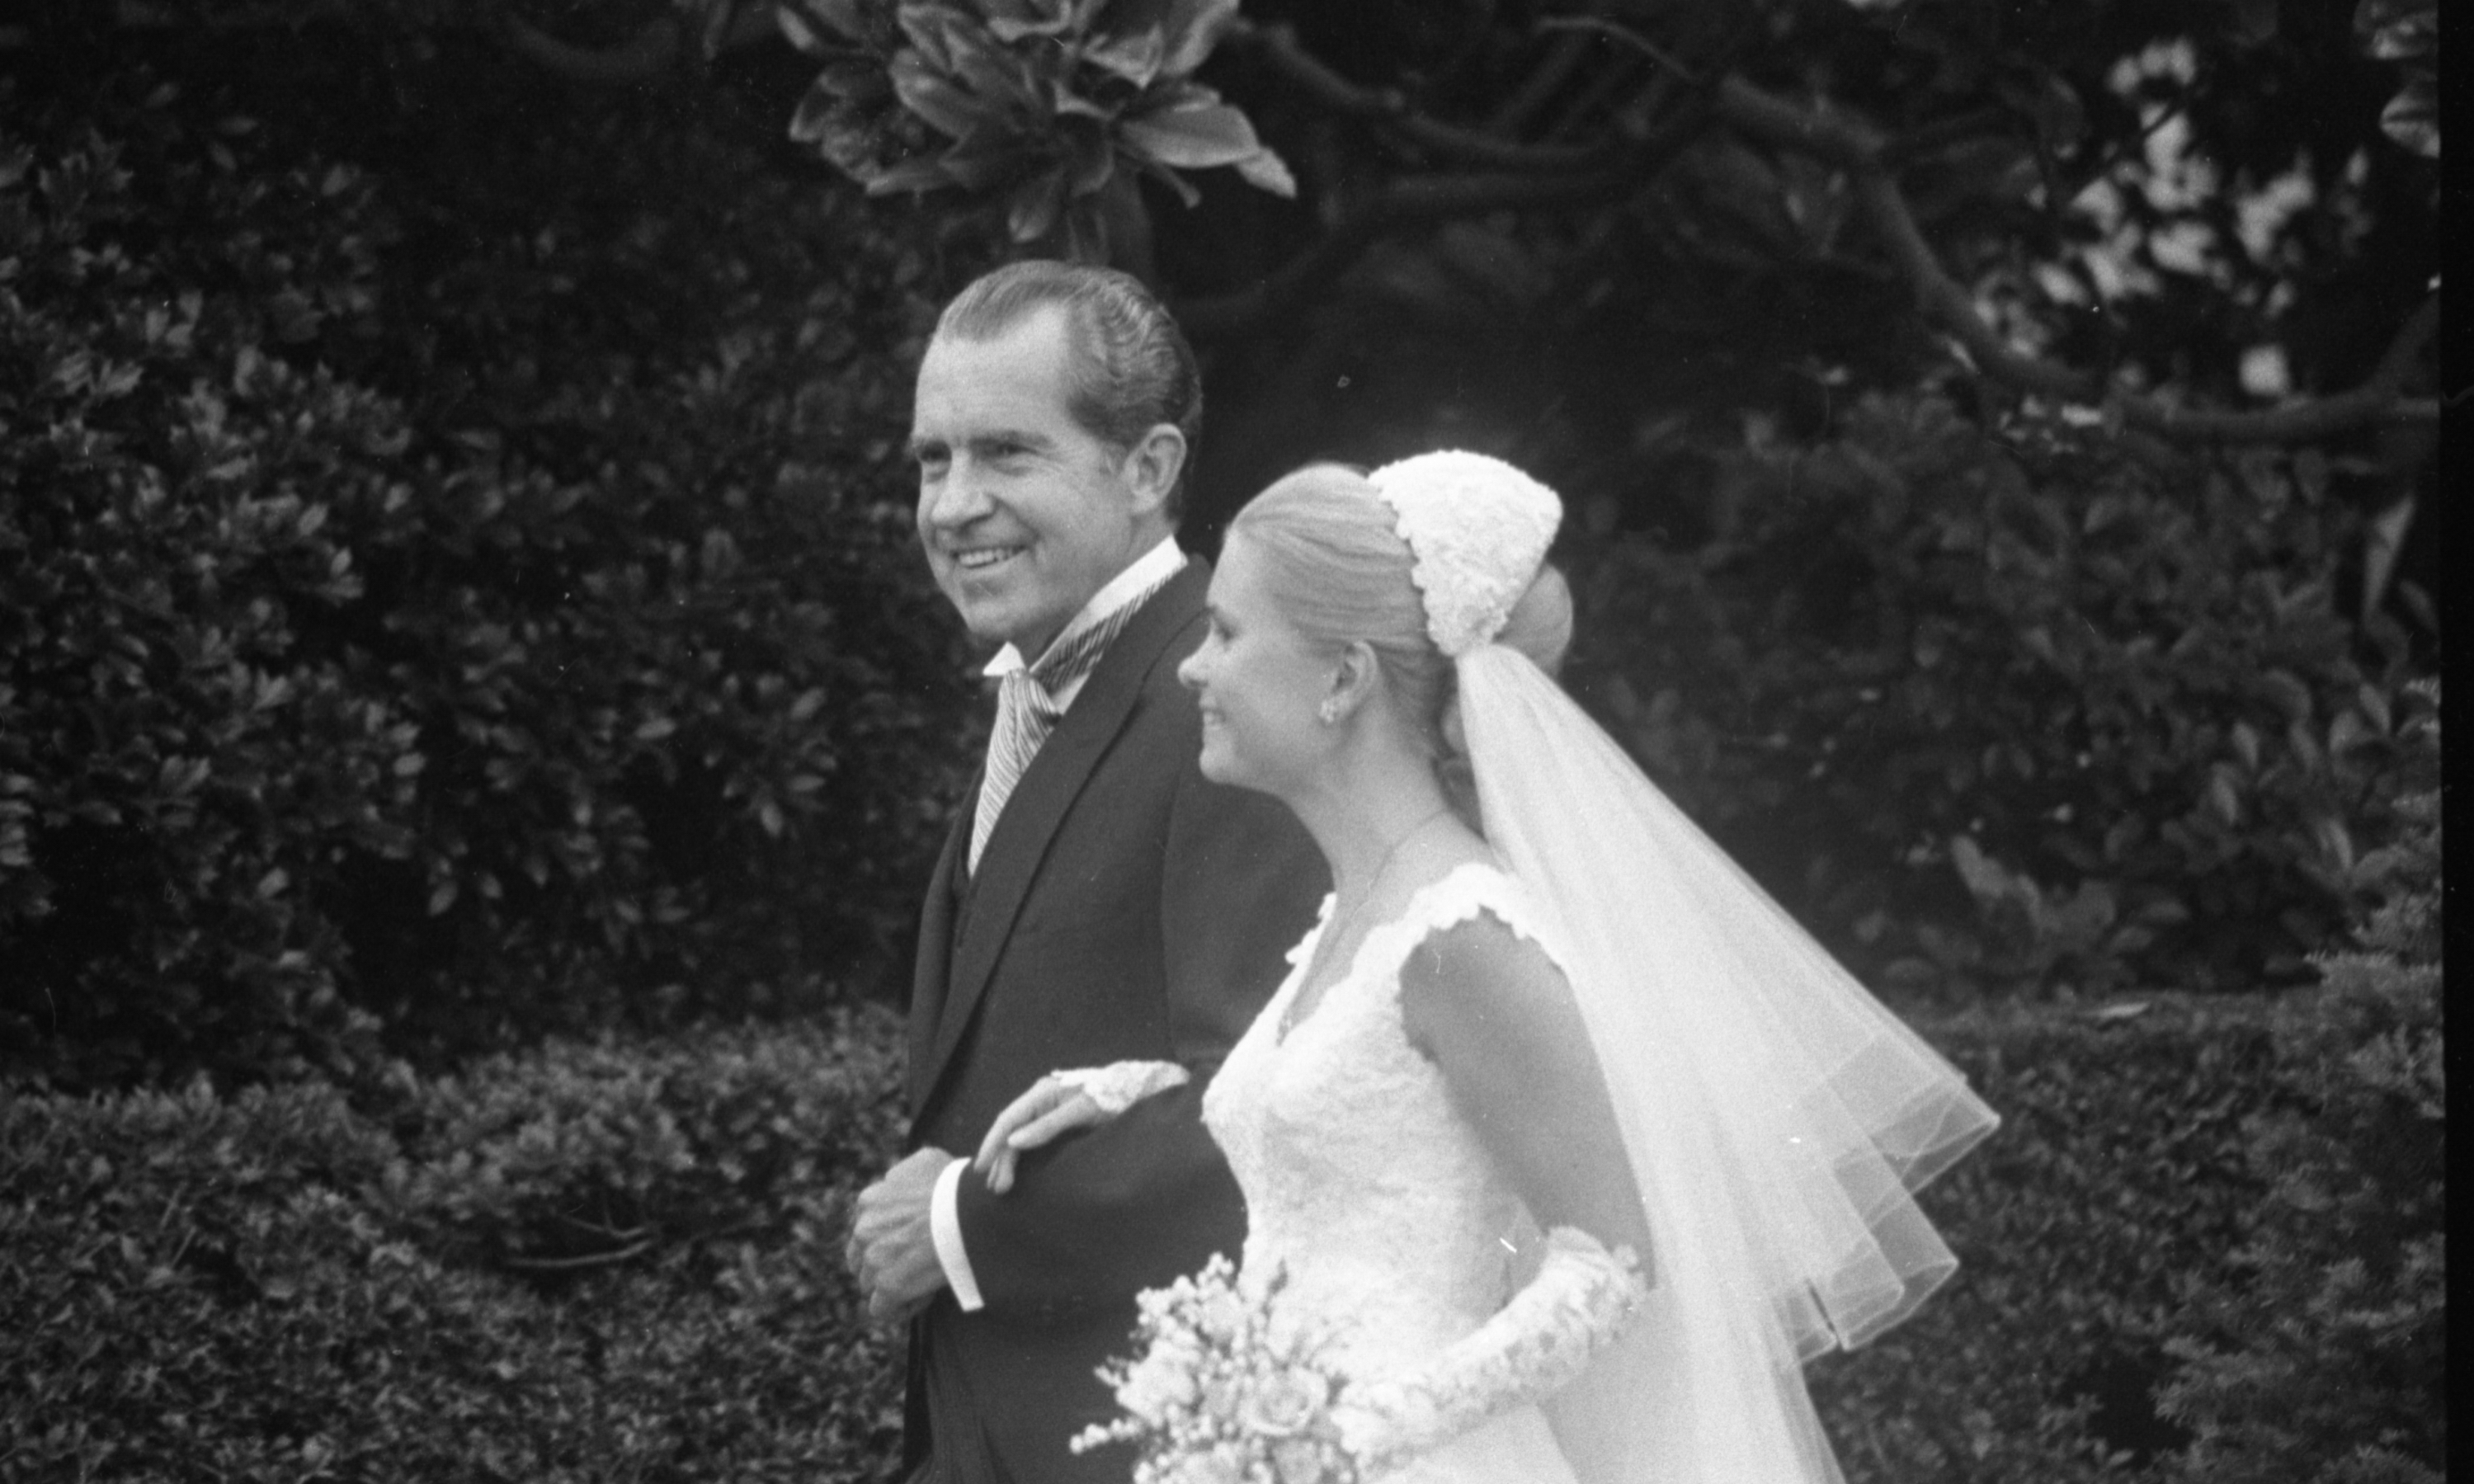 Tricia Nixon on her way to the Rose Garden with her father, President Richard Nixon, at her White House wedding.